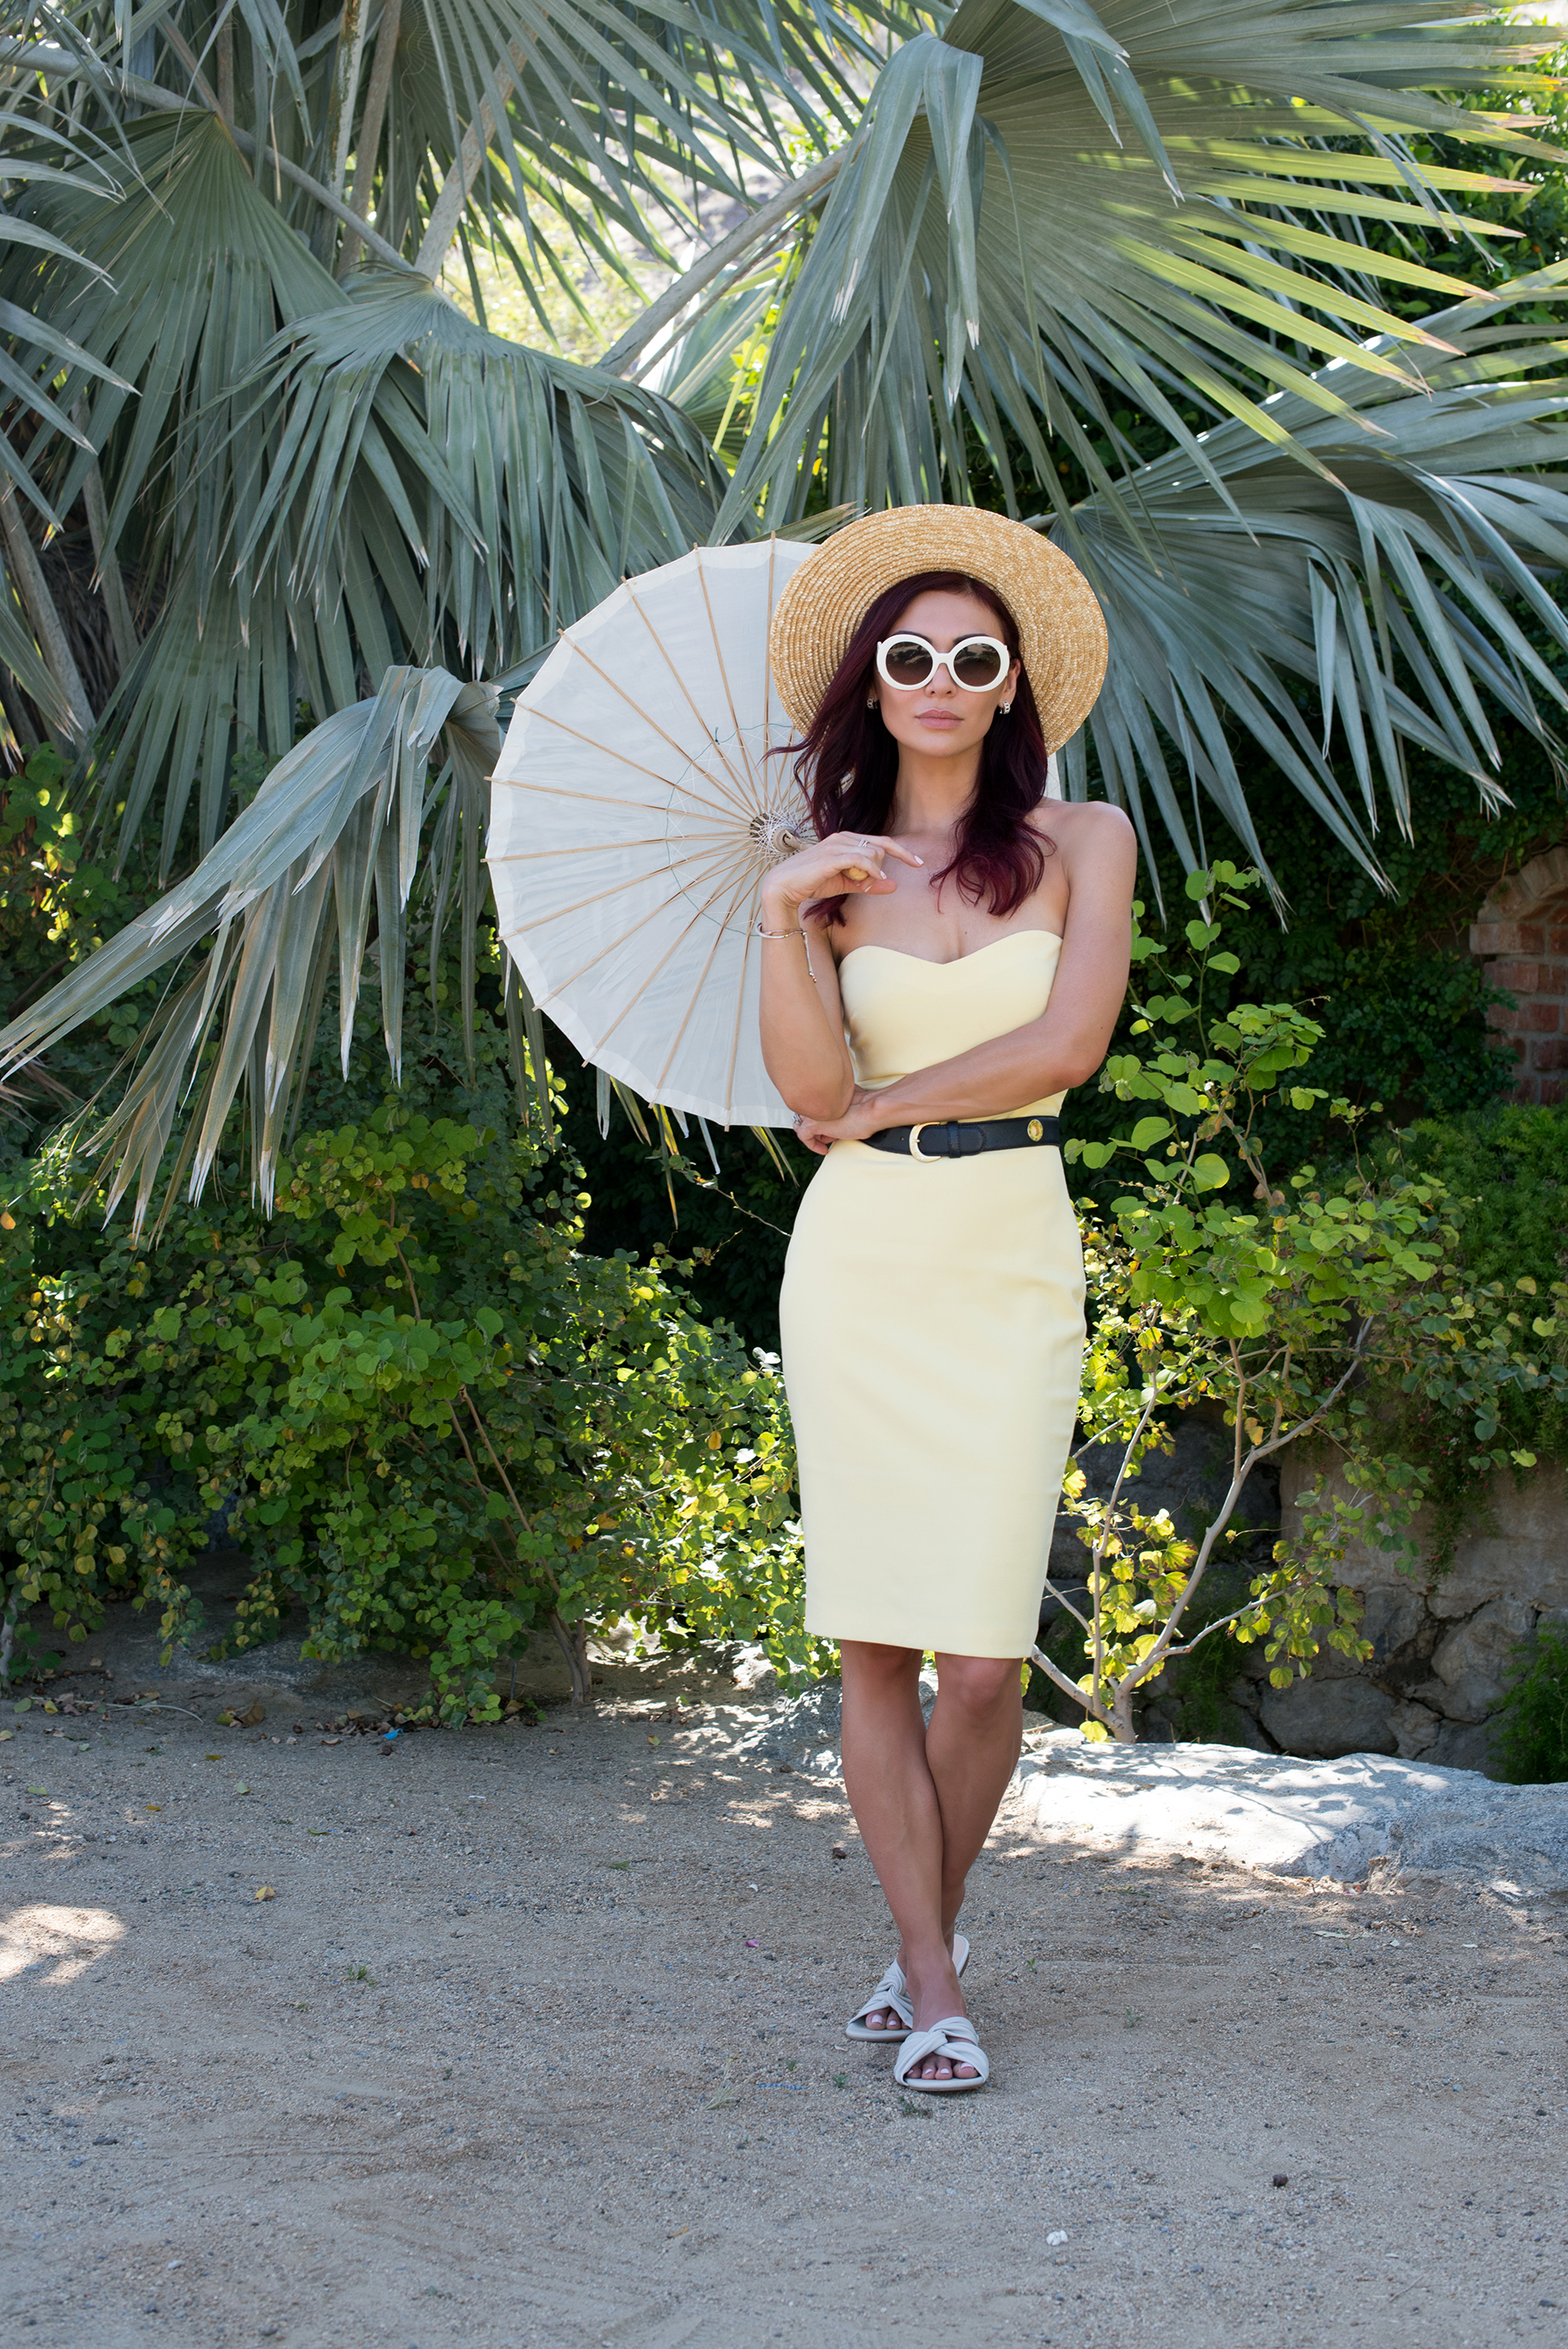 /   DRESS   / BELT (Vintage Paloma Picasso, similar   HERE  ) /   SHOES   /   HAT   / SUNGLASSES (Prada, similar   HERE   and   HERE  ) / BAG /   EARRINGS   /